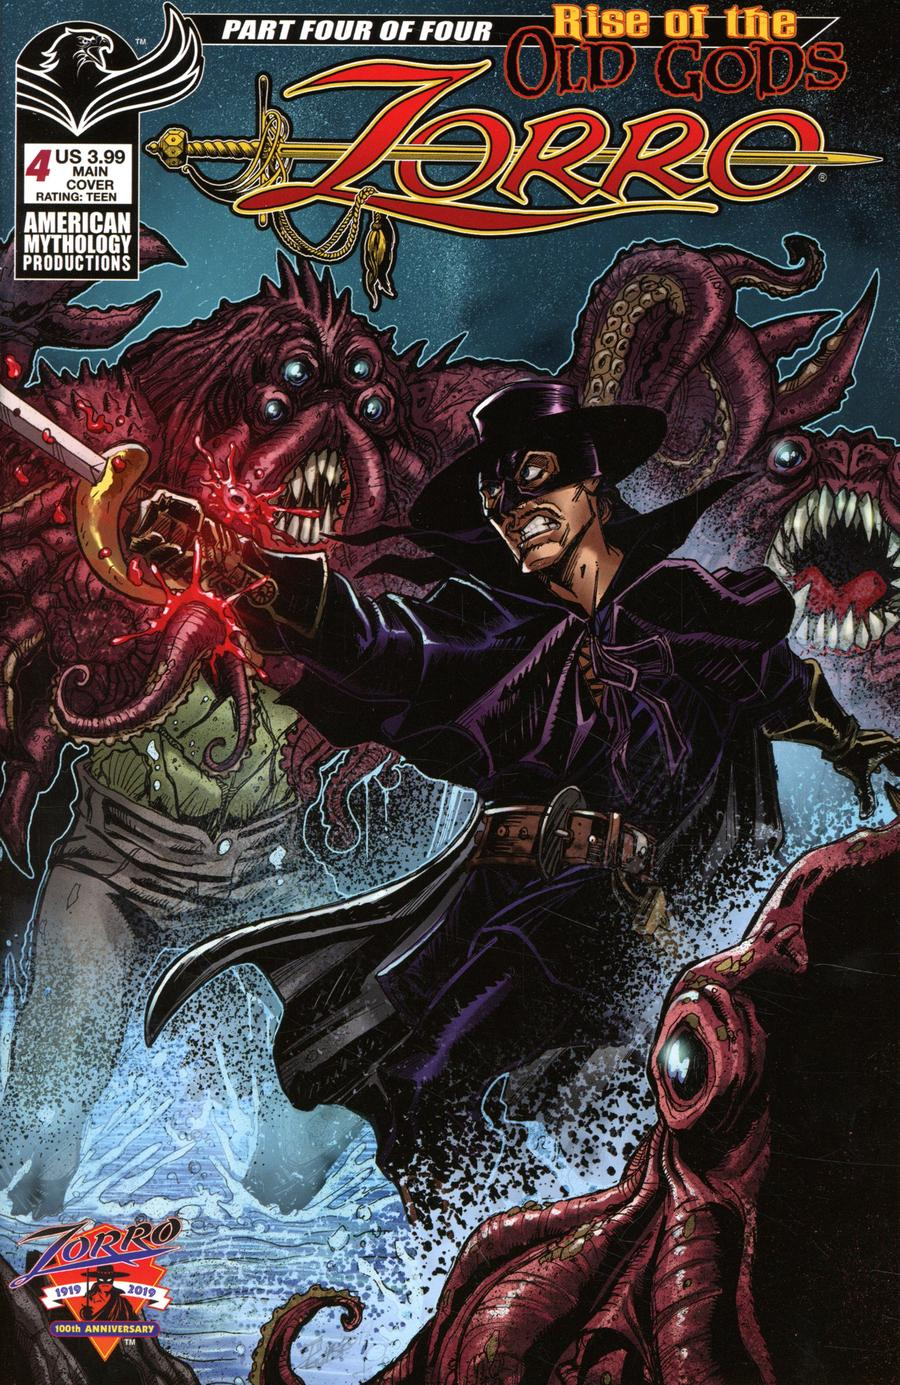 Zorro Rise Of The Old Gods #4 Cover A Regular Puis Calzada Cover